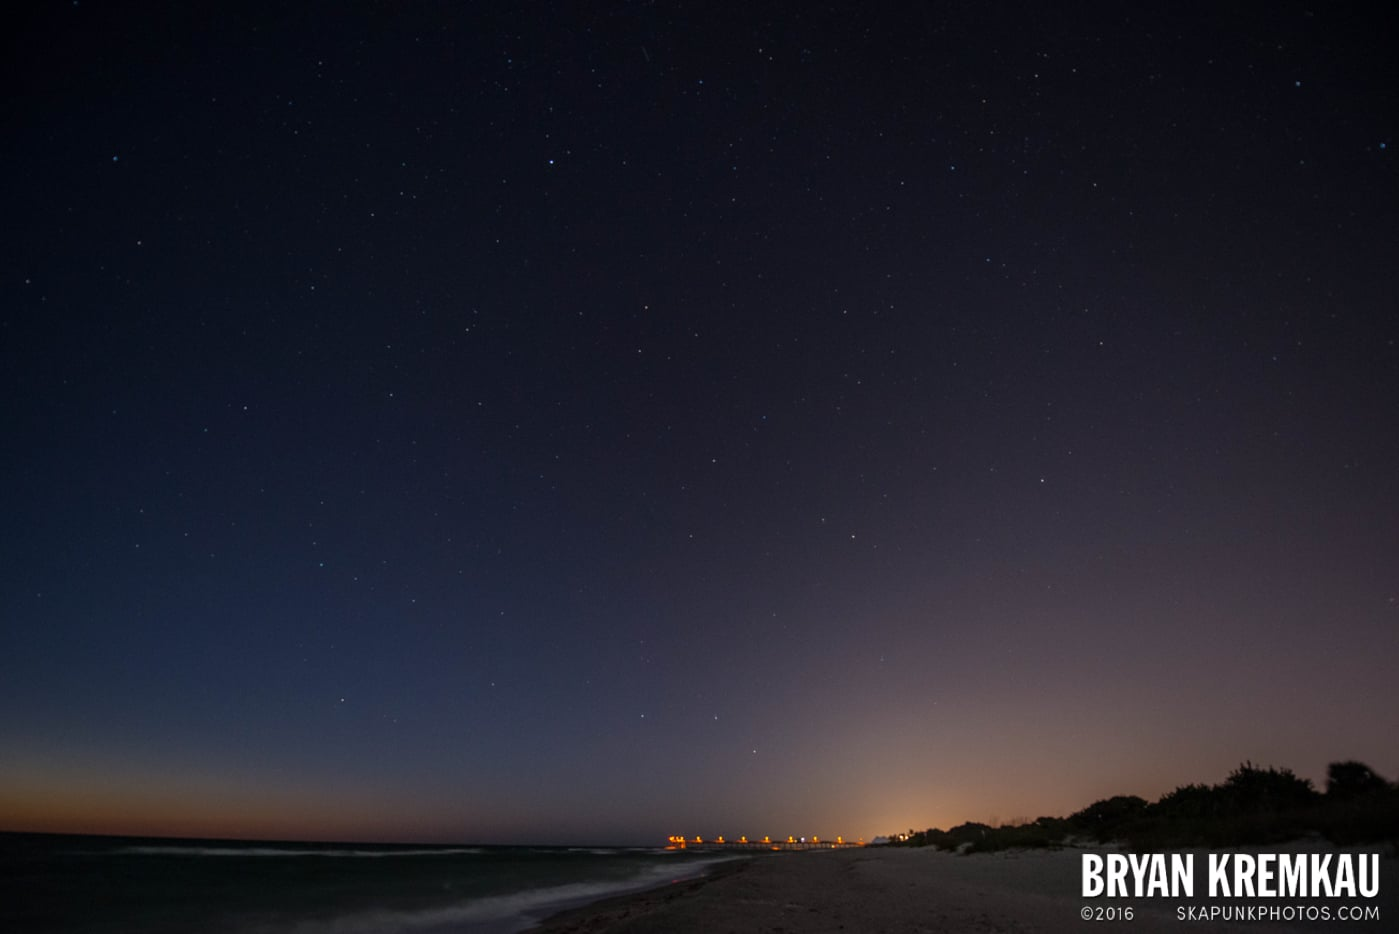 Sunsets, Astrophotography & Birds @ Venice, Florida - 10.25.14 - 11.5.14 (81)